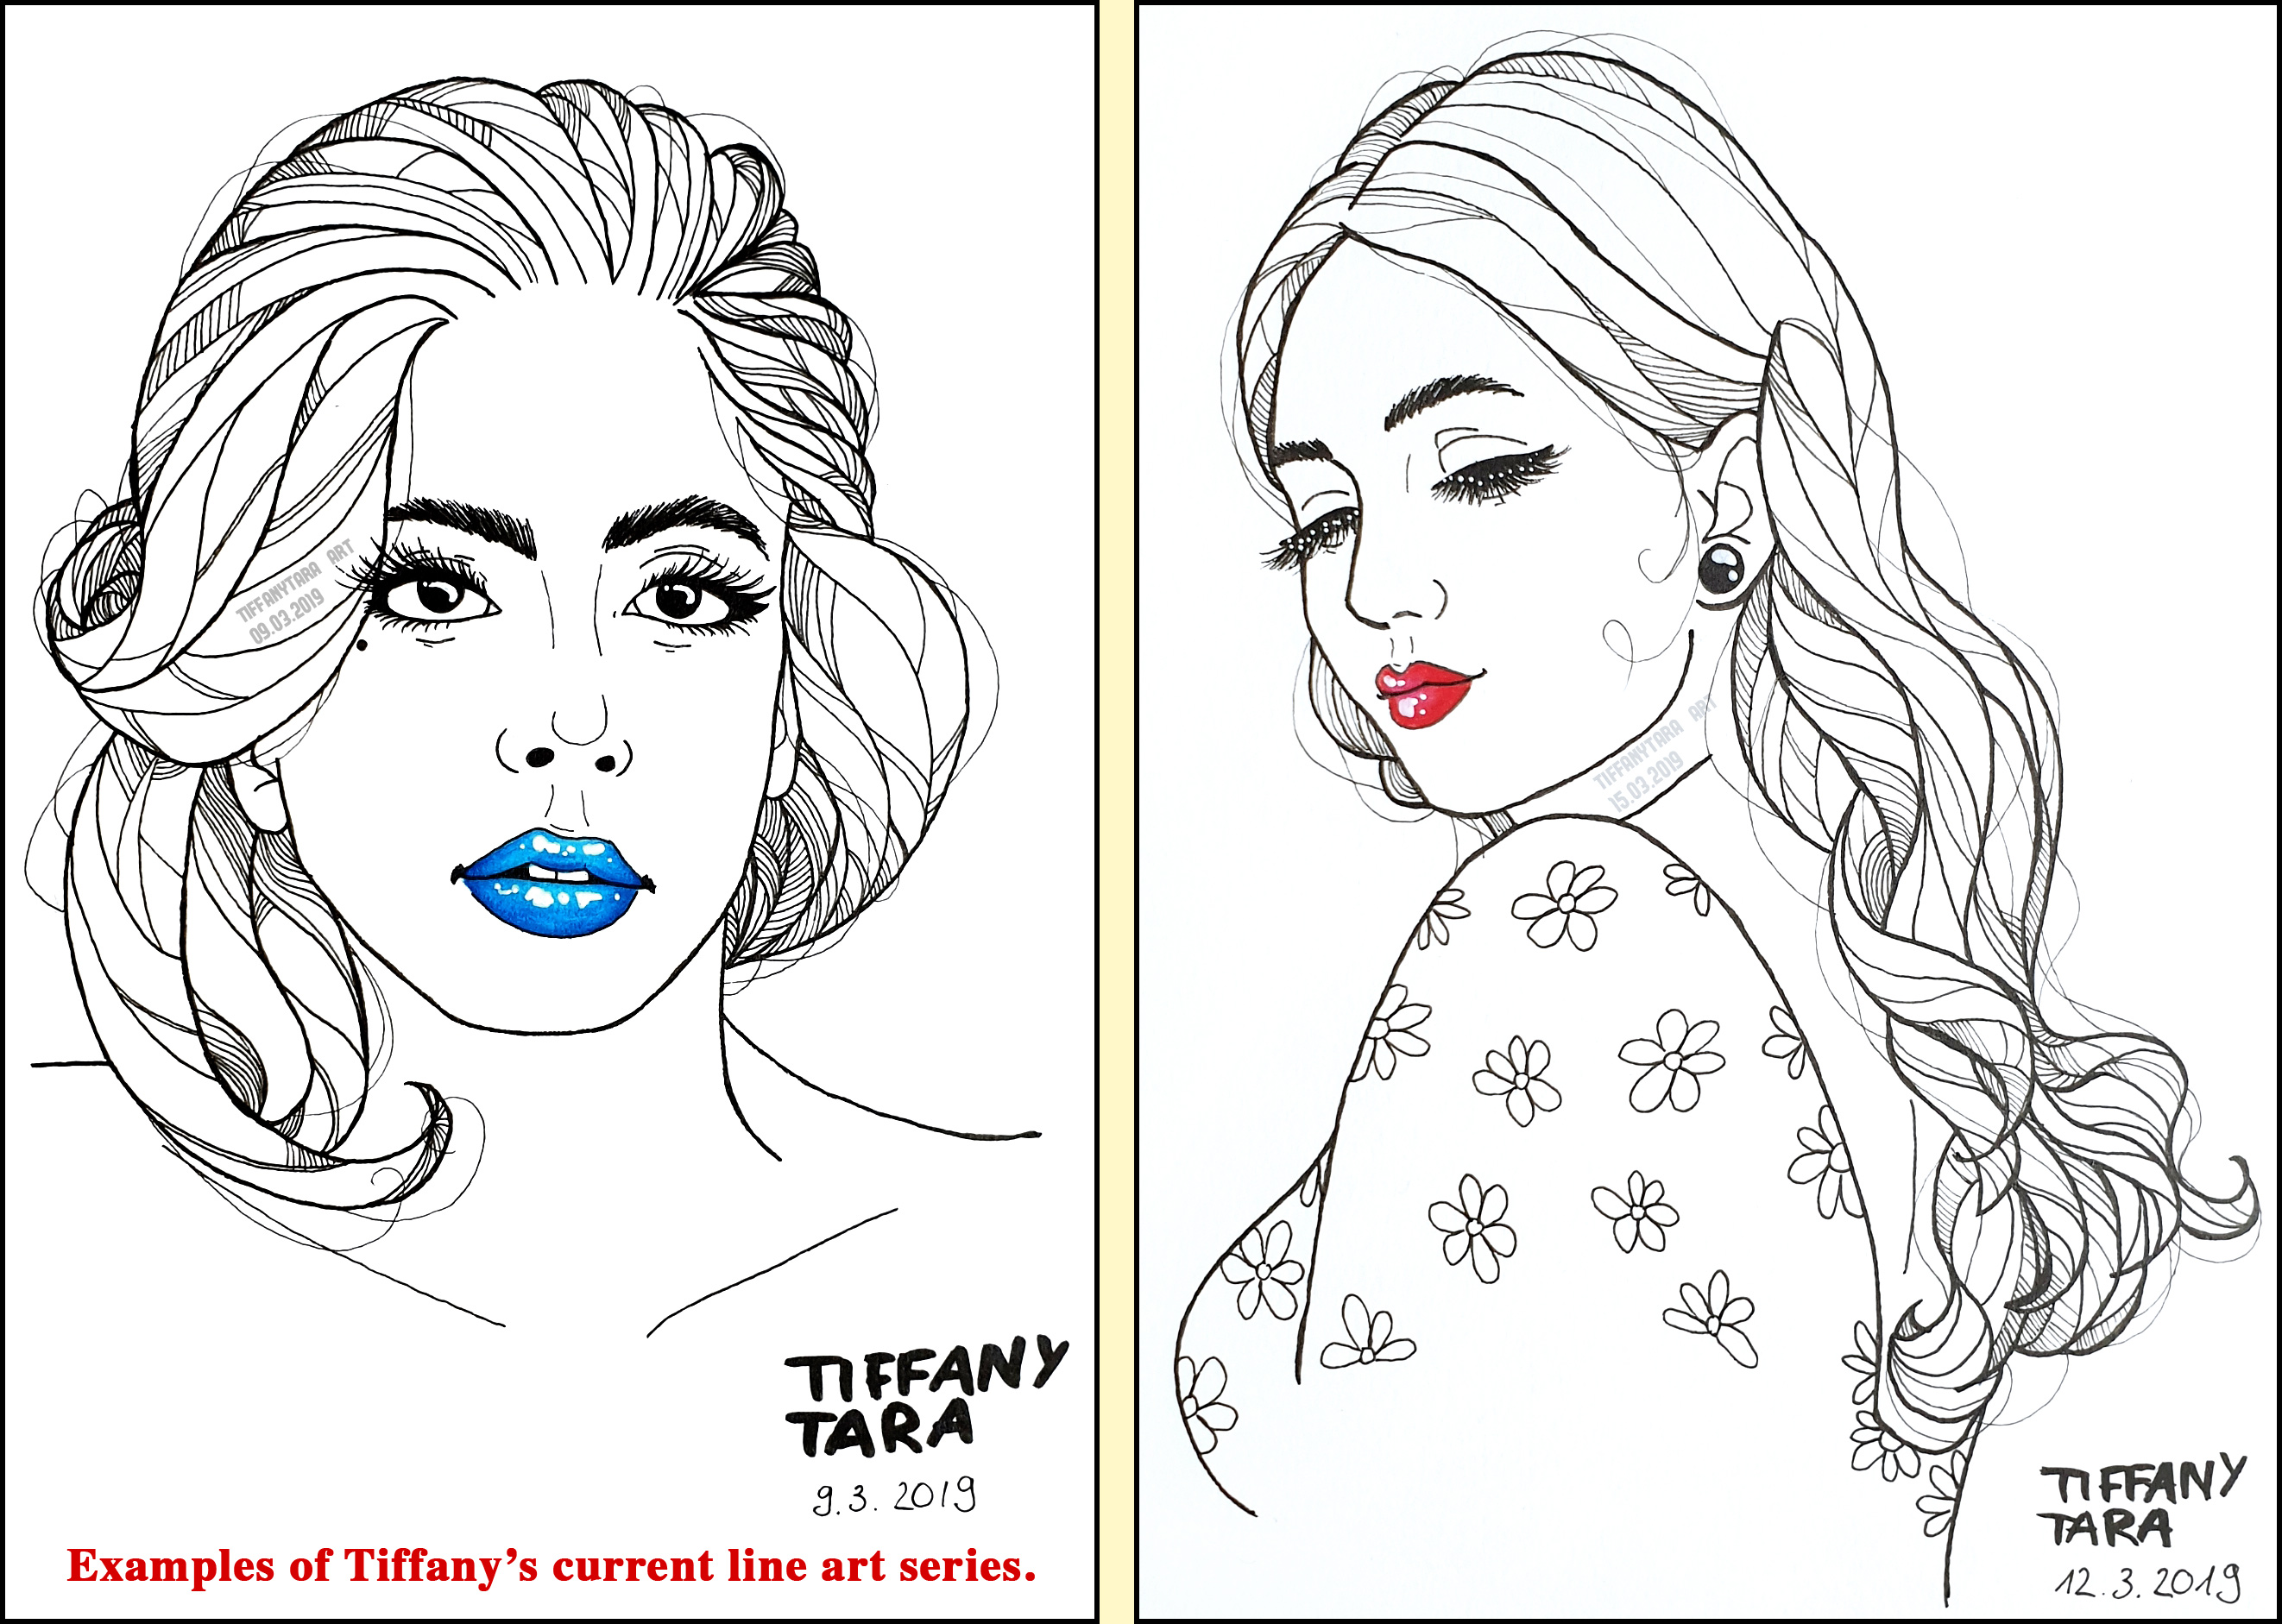 Tiffany Tara Art